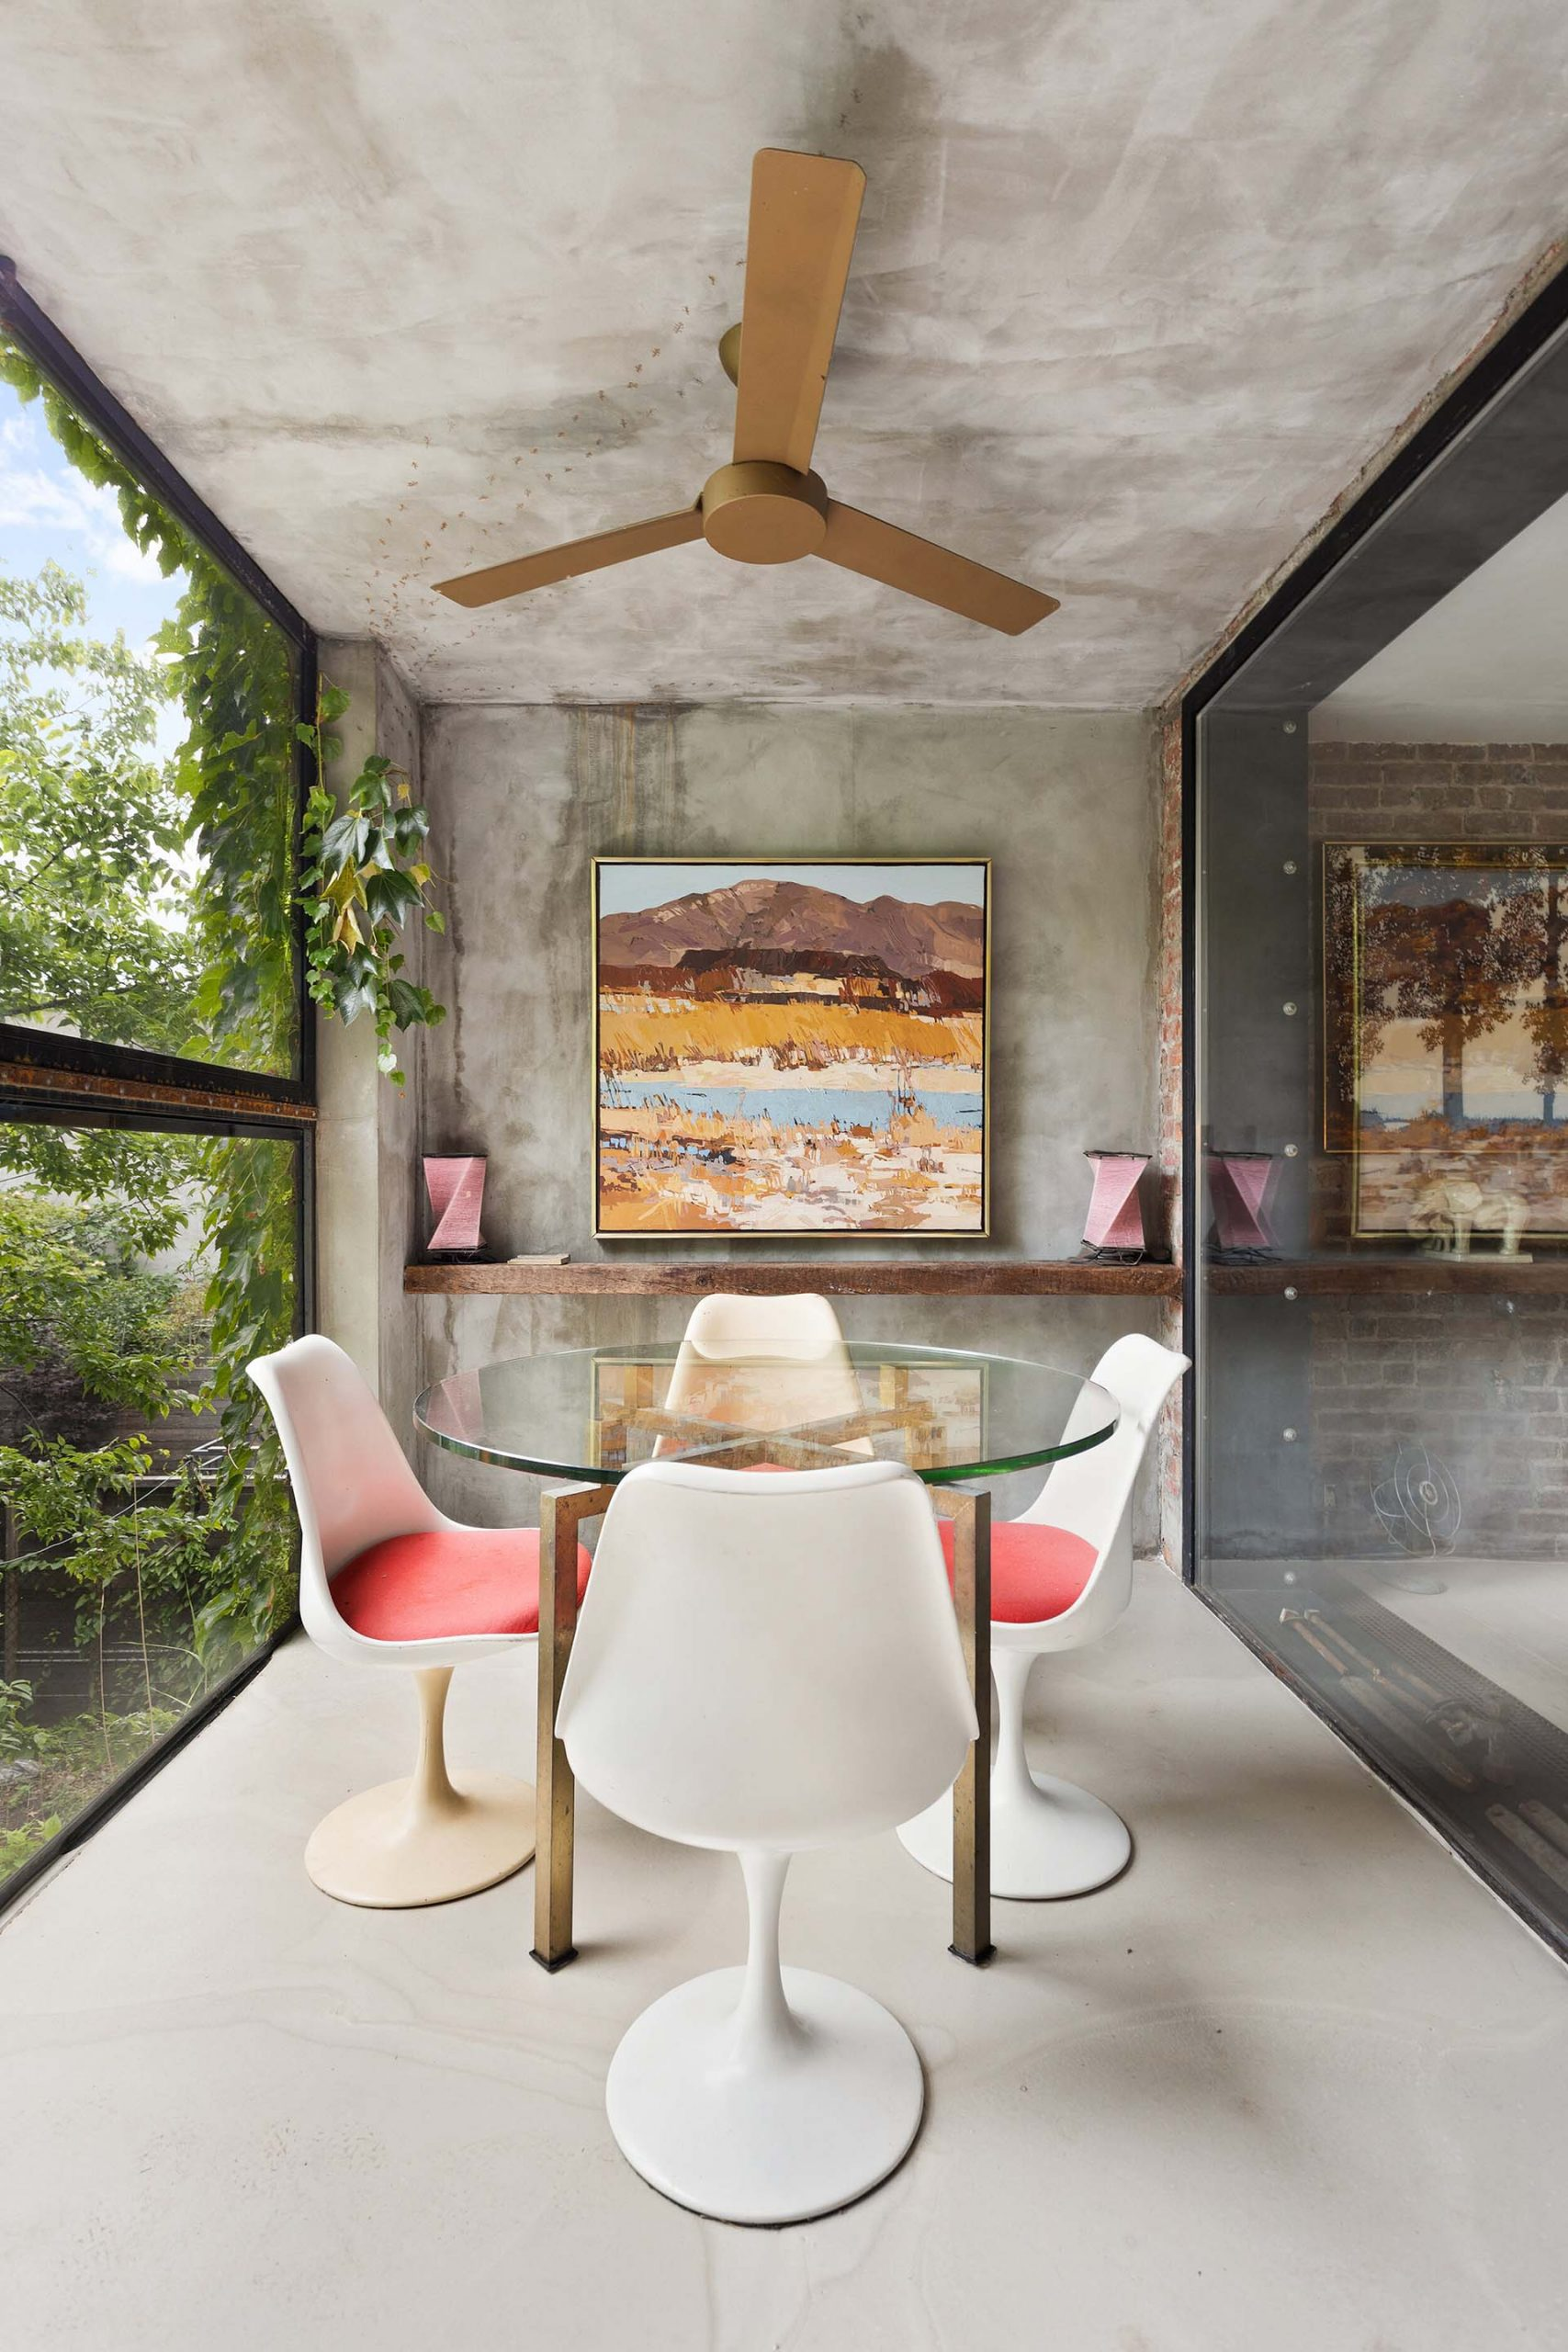 In this modern dining room, raw concrete wraps from the ceiling onto the wall and floor, while the glass walls allow natural light to filter through to the interior of the home.